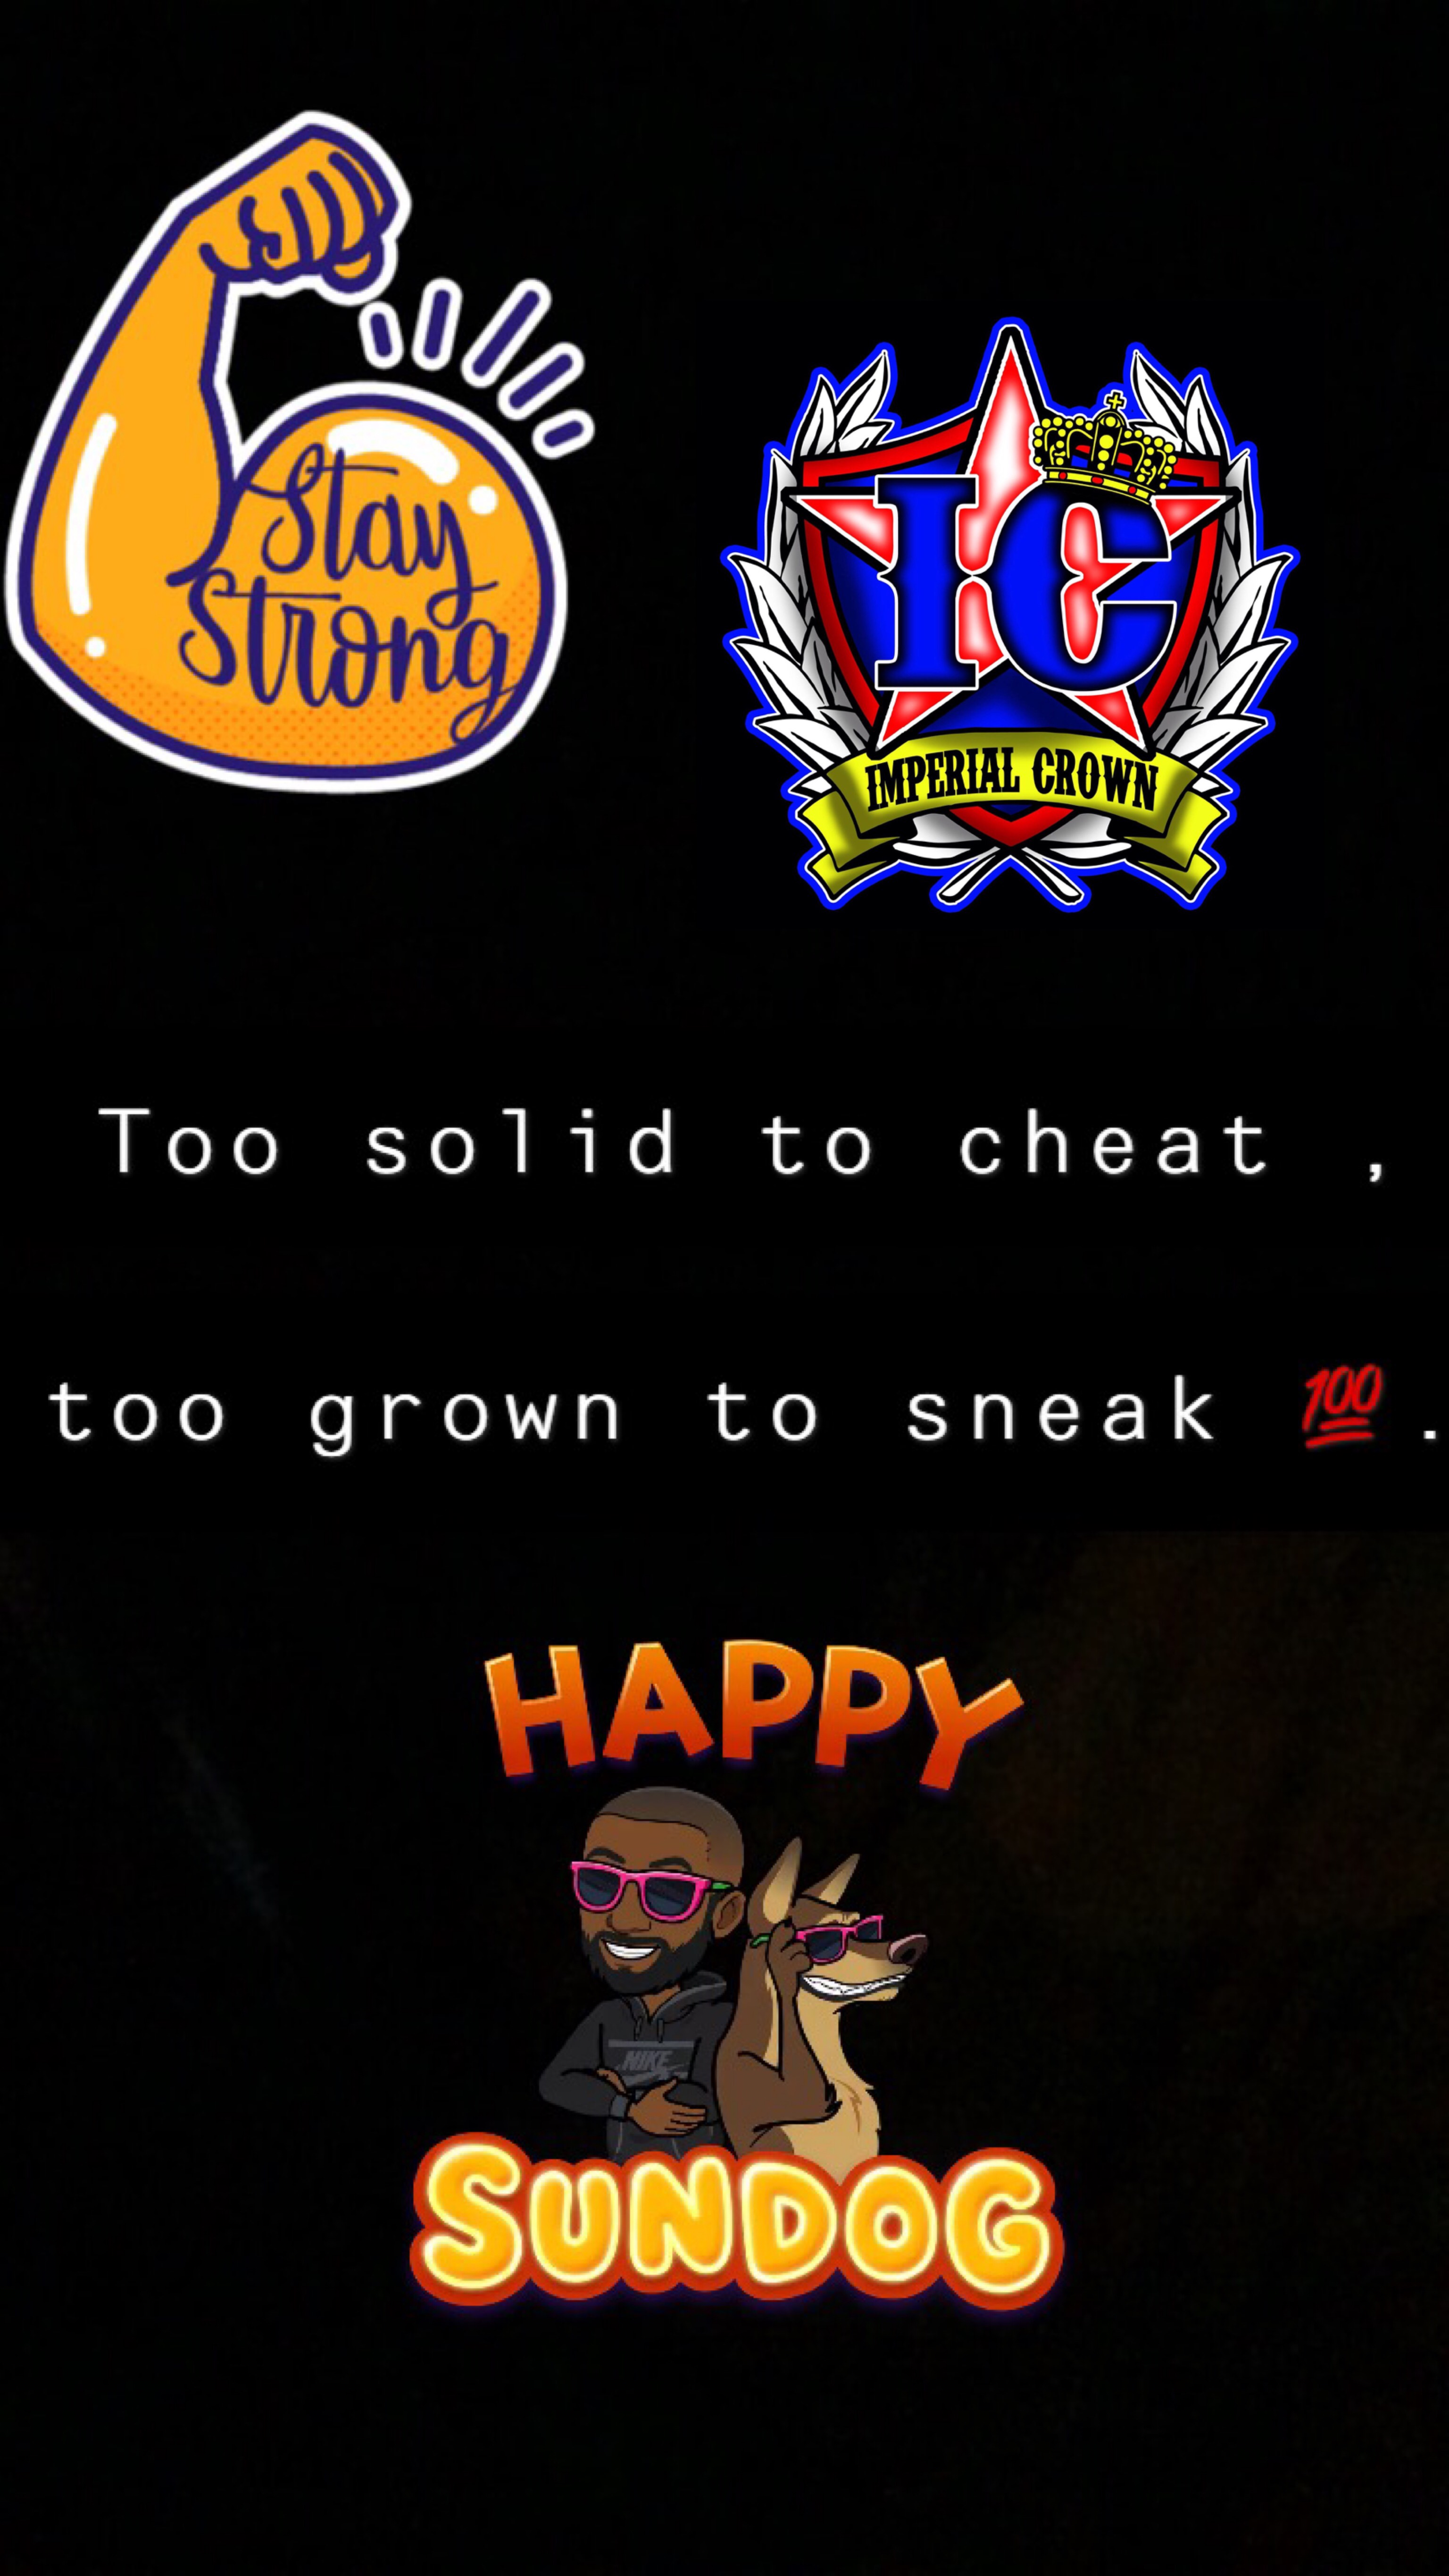 Too solid to cheat….